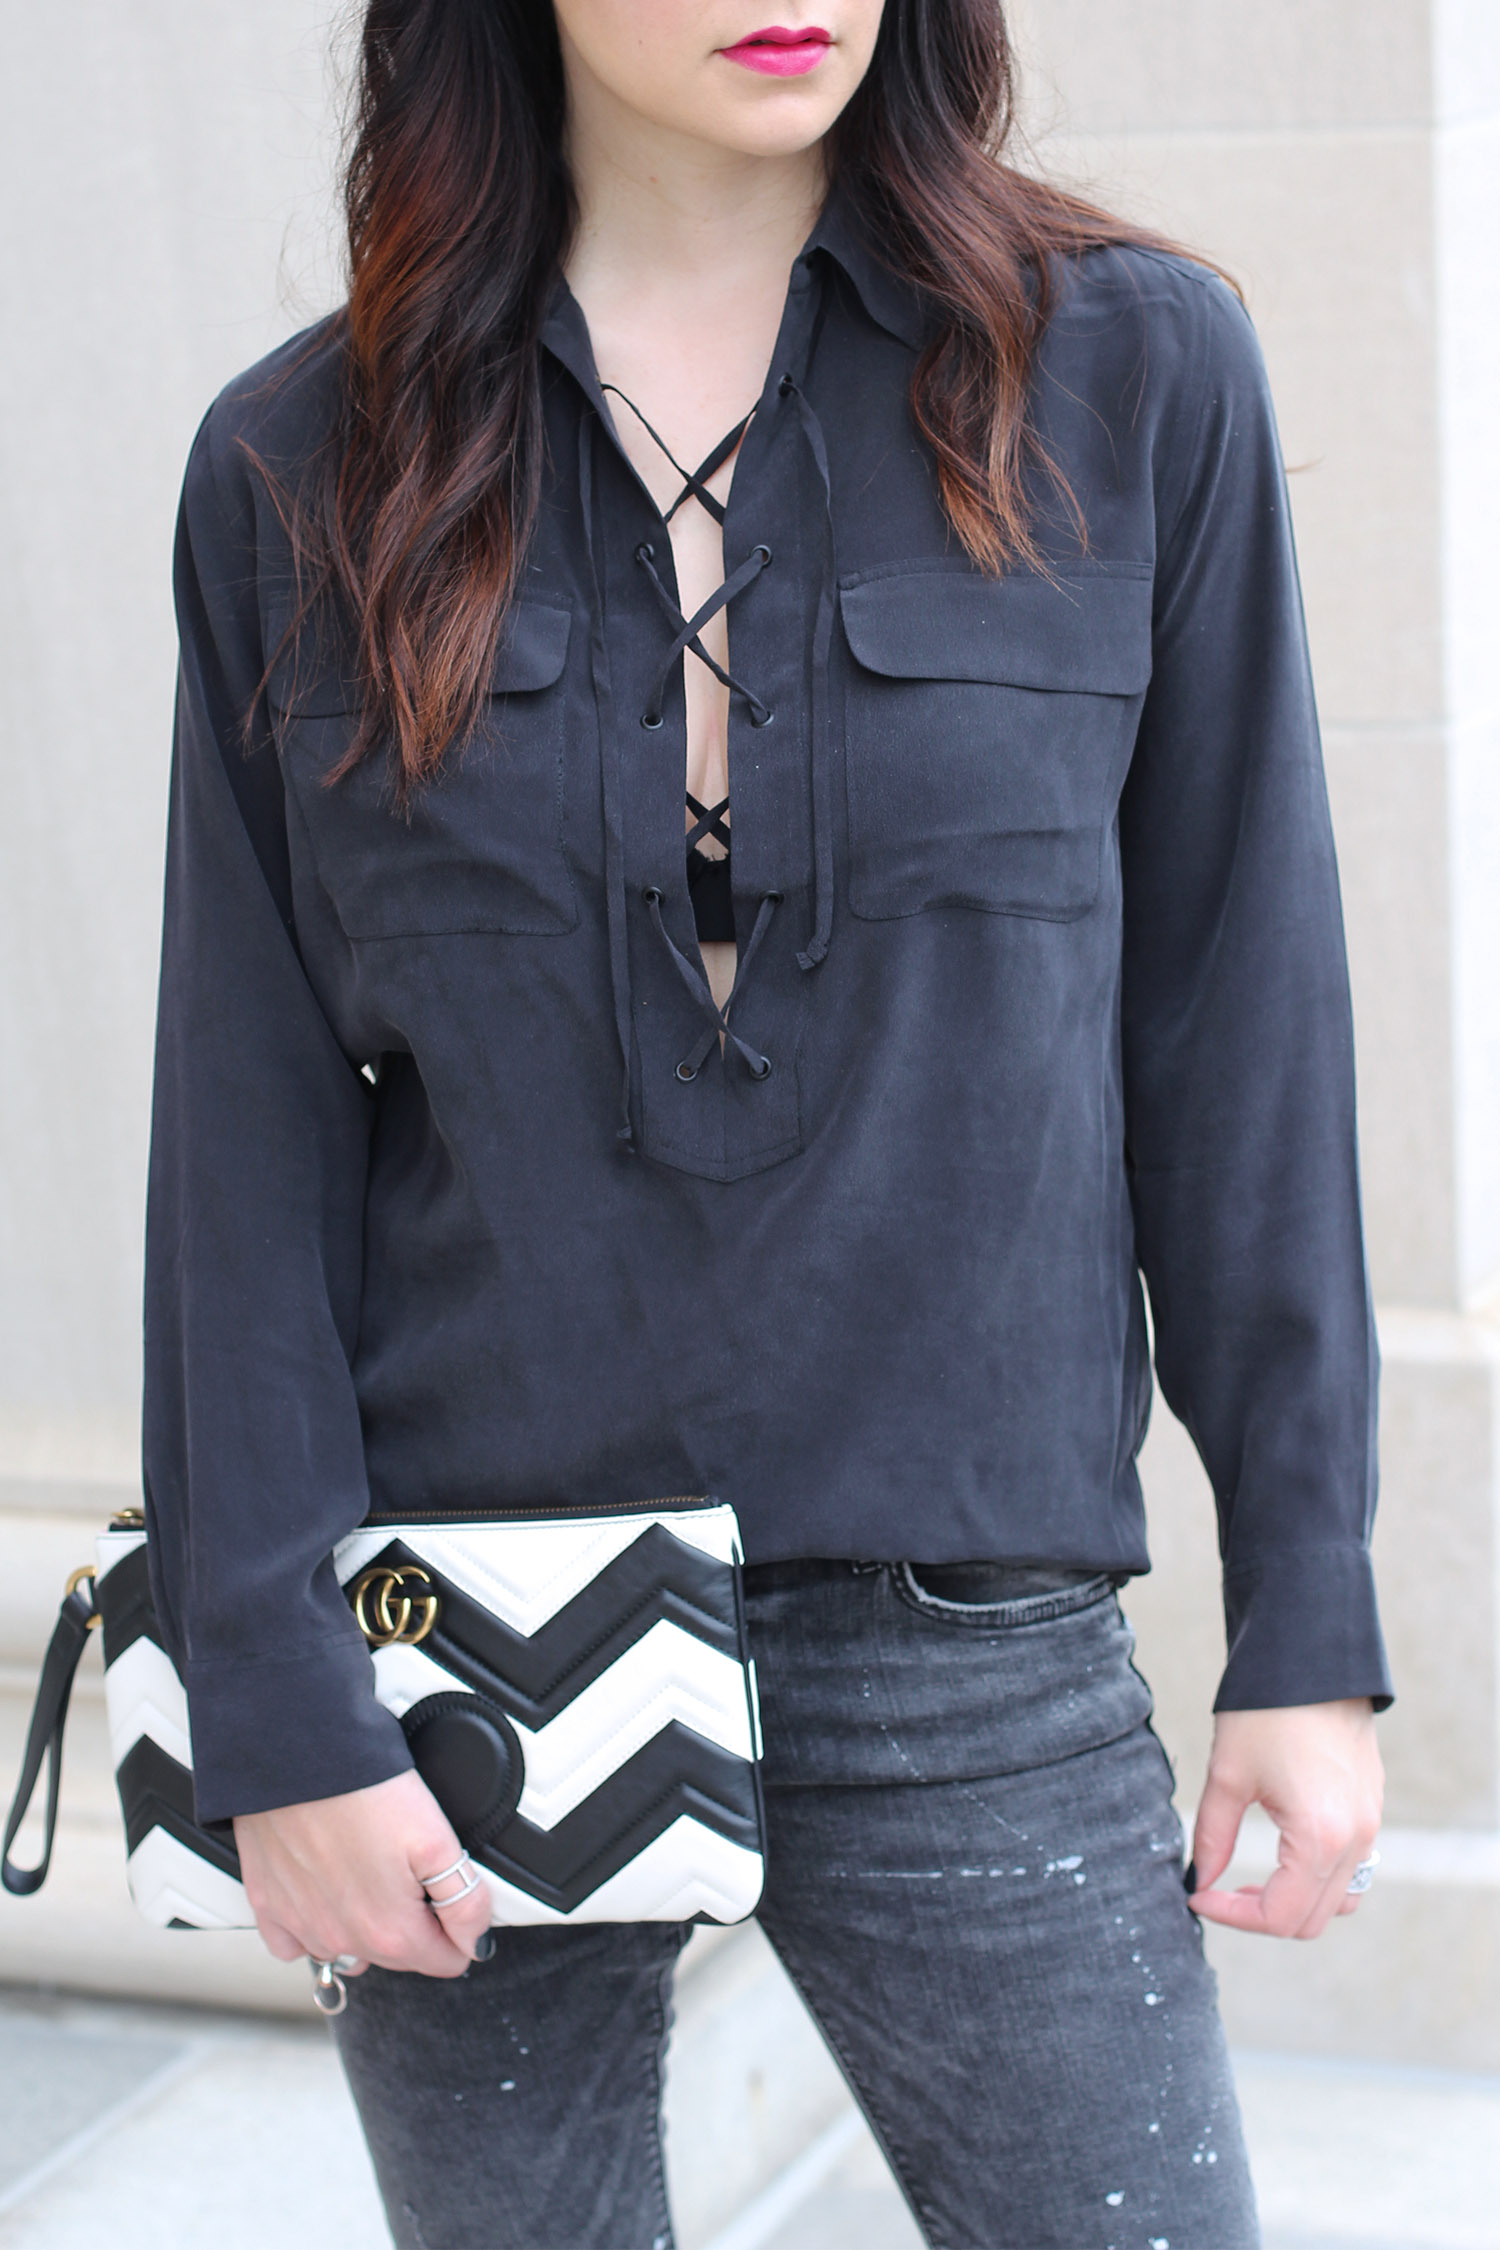 How to wear a lace up shirt